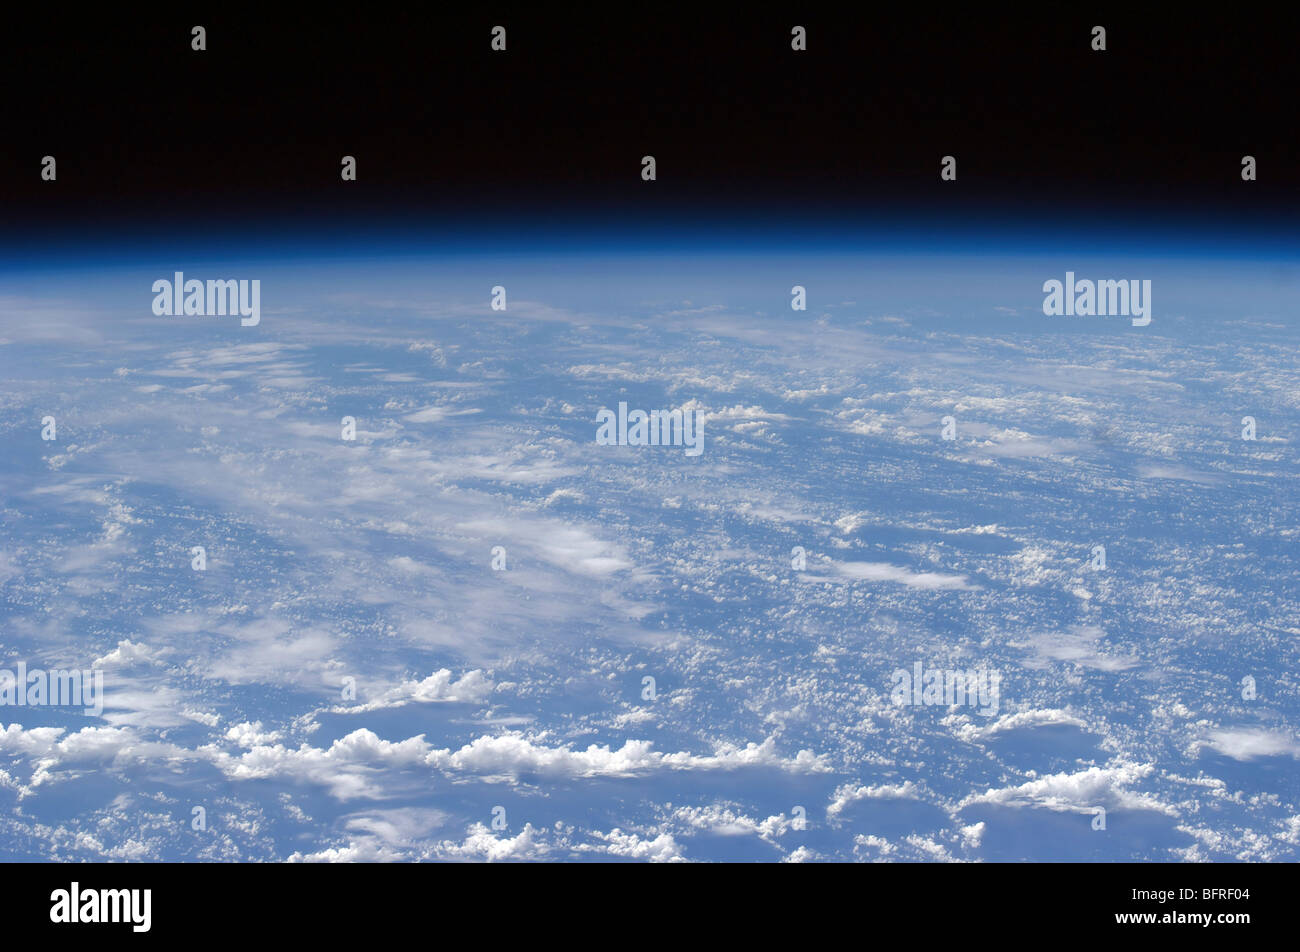 An oblique horizon view of the Earth's atmosphere. - Stock Image